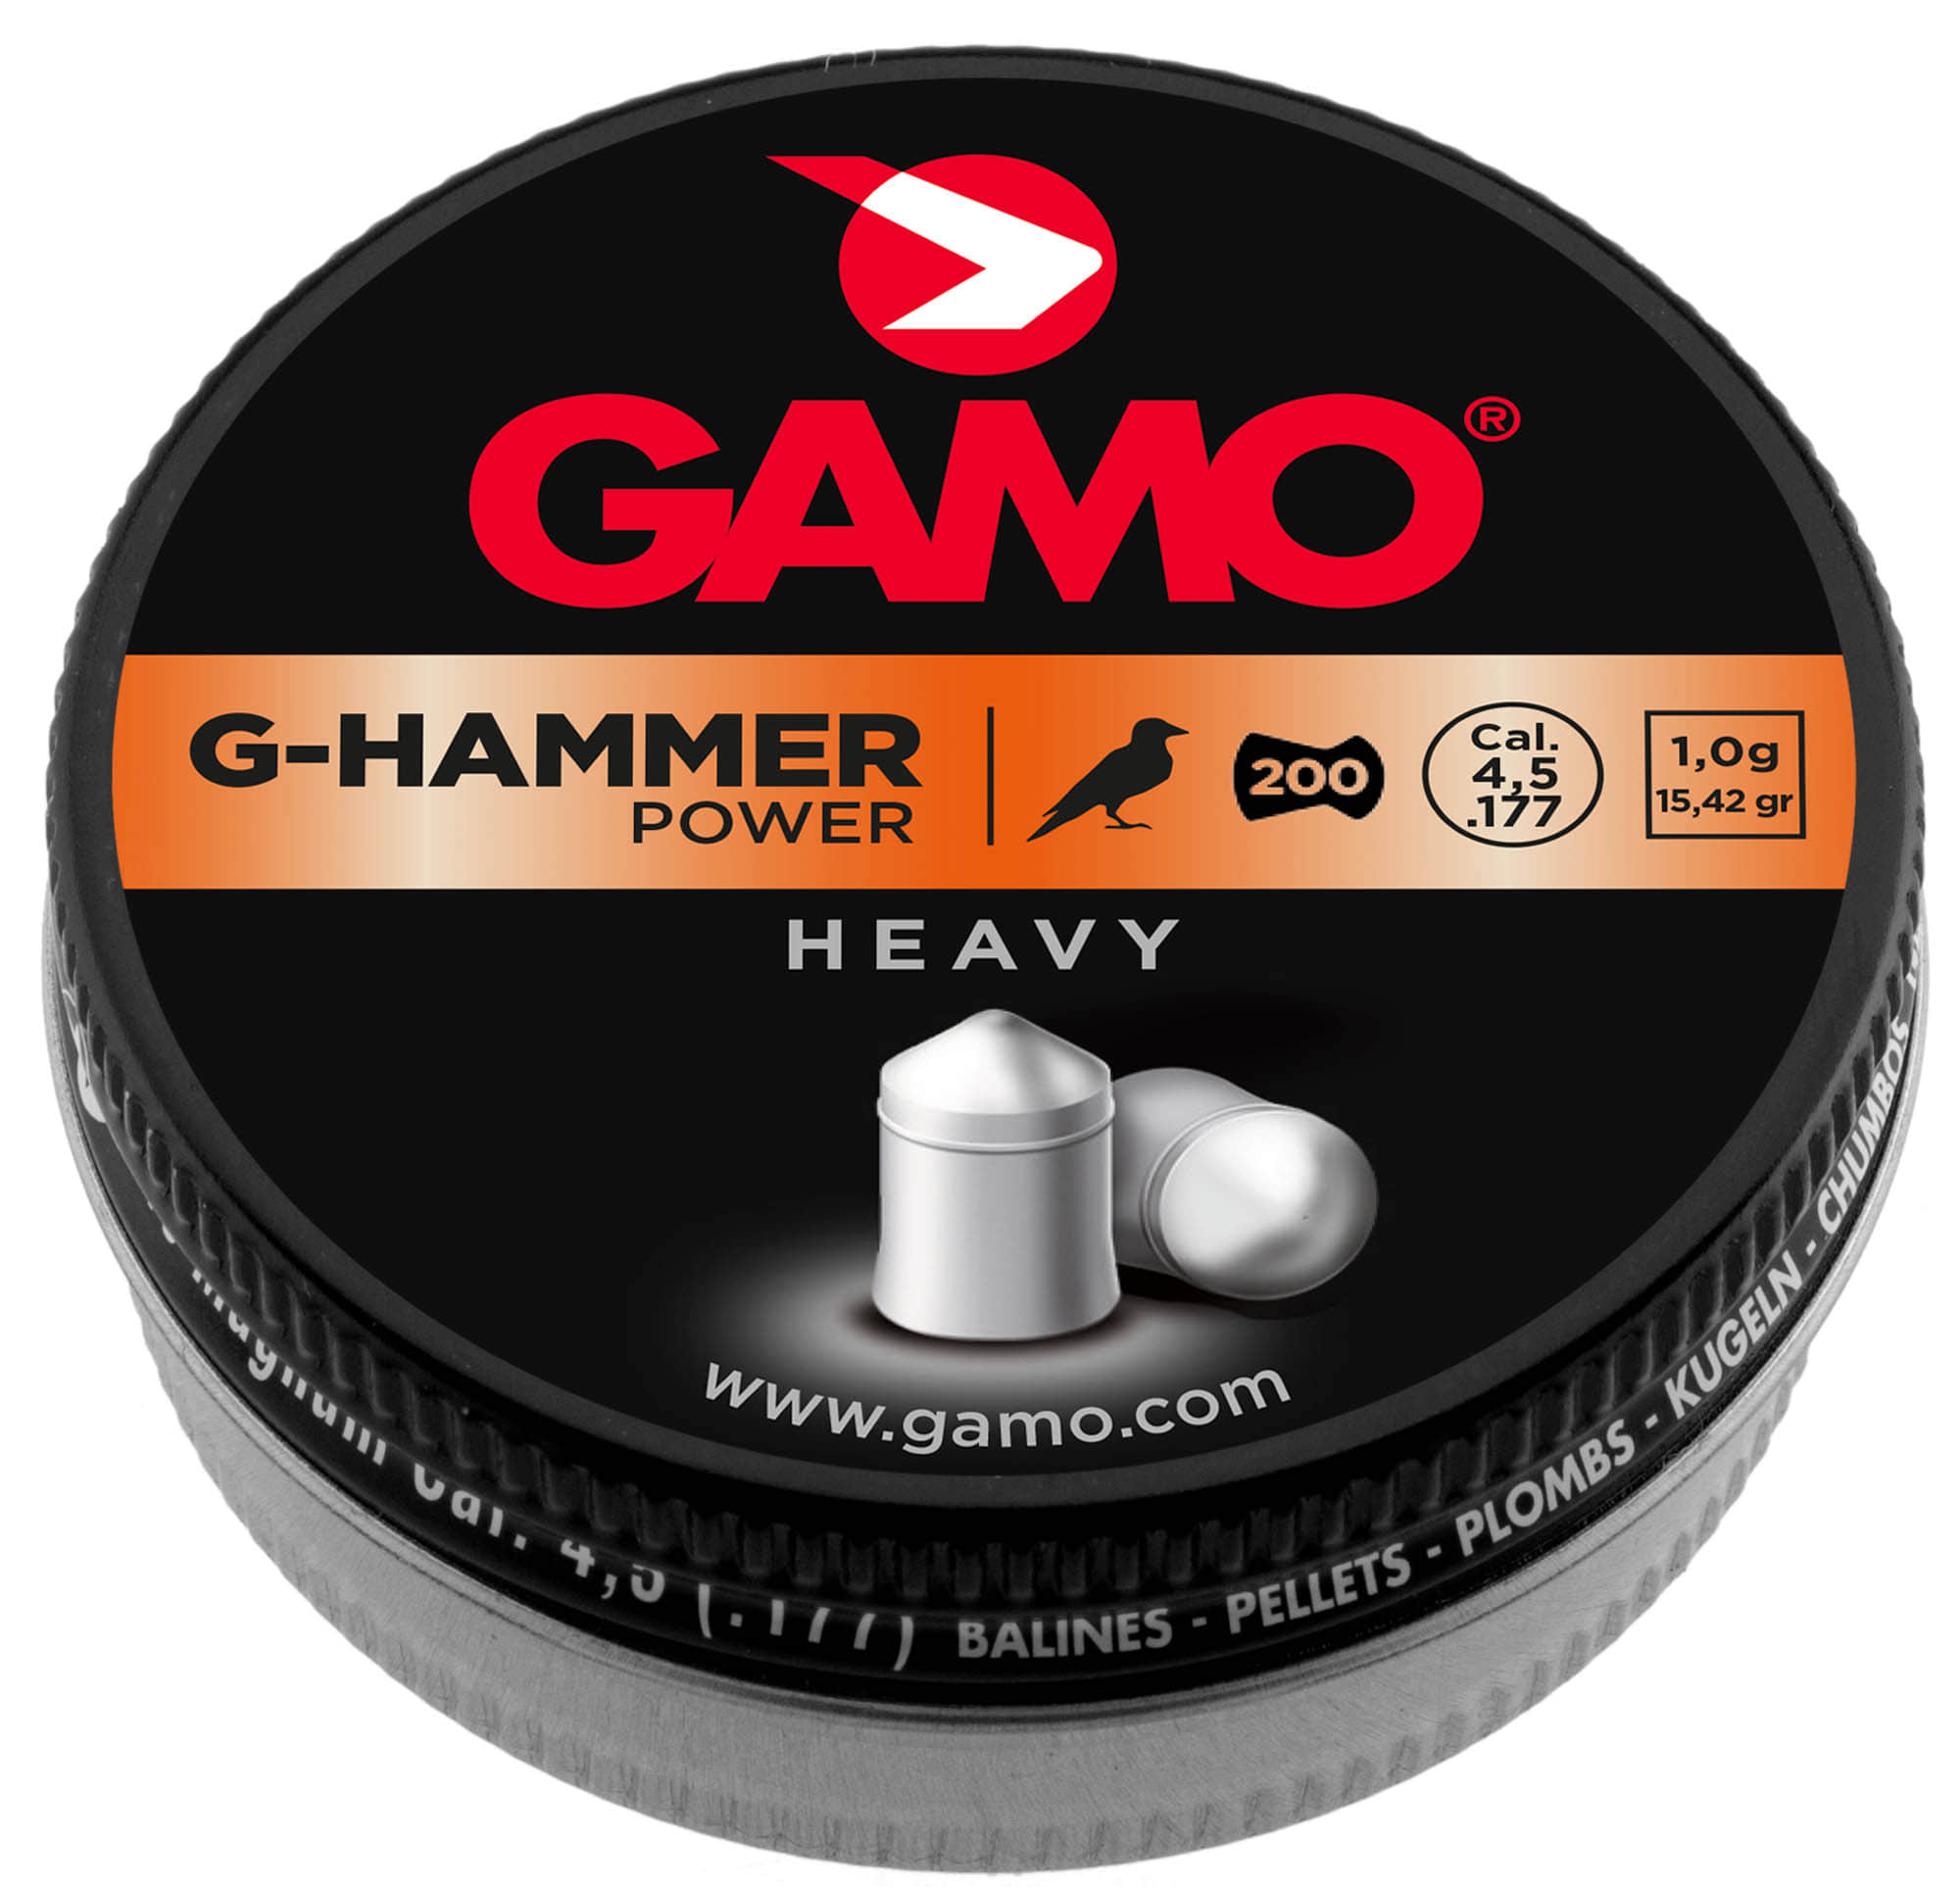 GAMO Plombs HAMMER - Energy - PLOMBS LOURDS - (200p. - cal.4.5) - G3310